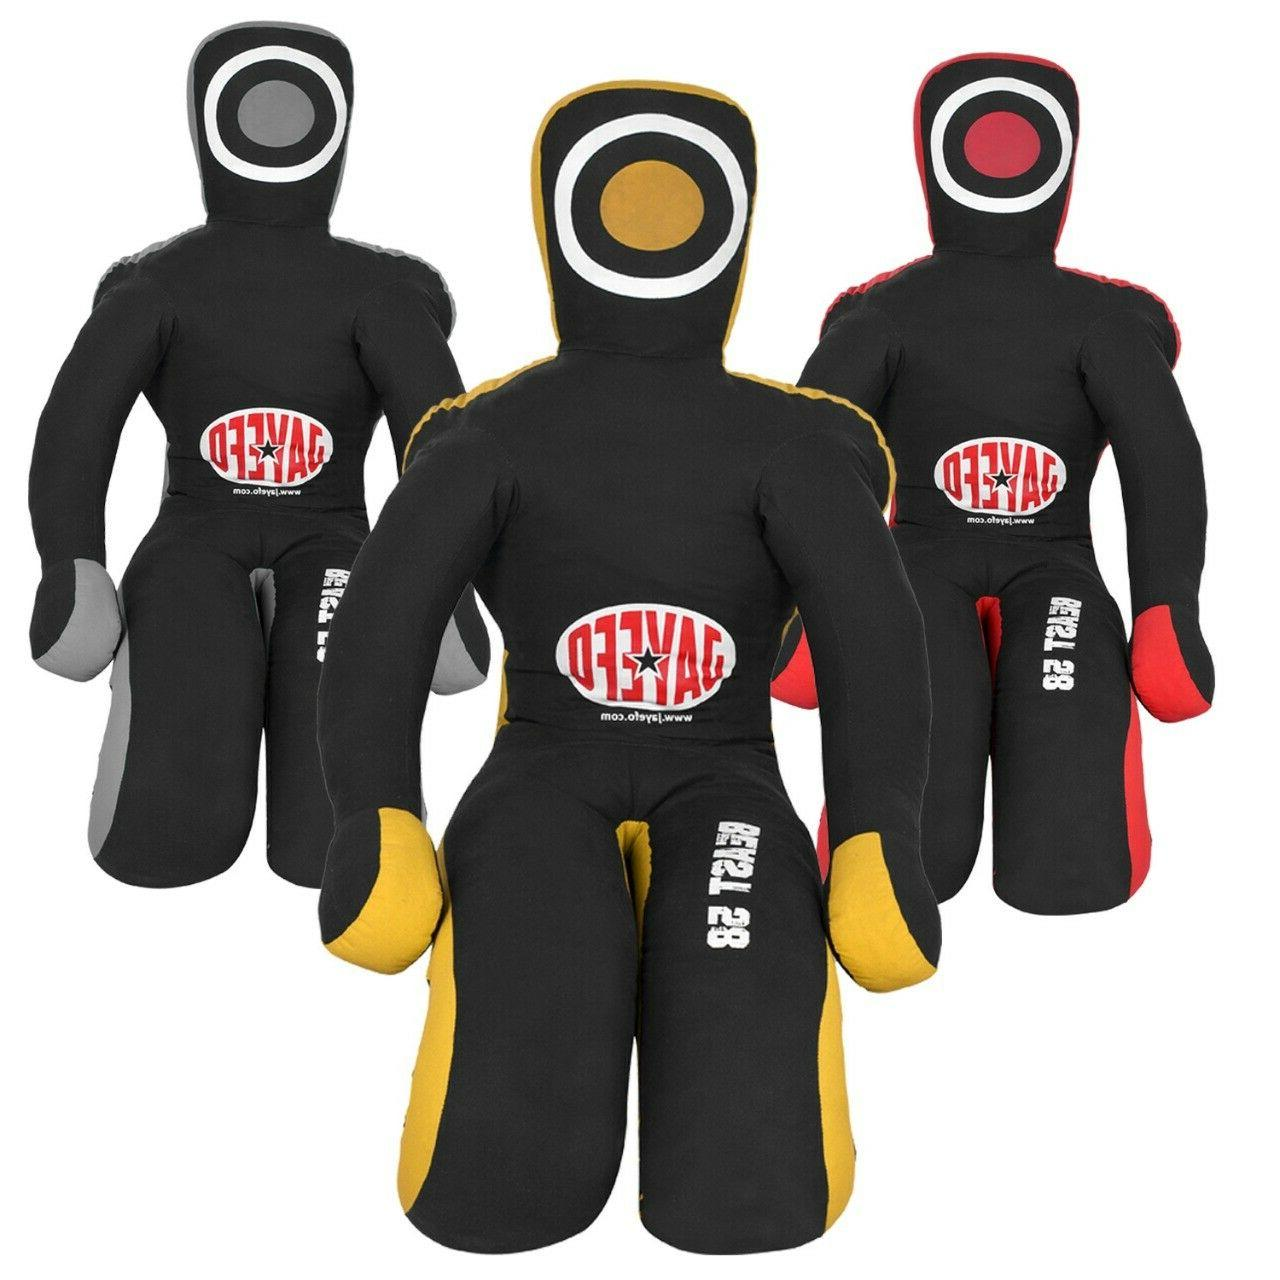 JAYEFO BJJ GRAPPLING SUBMISSION PUNCHING BAG